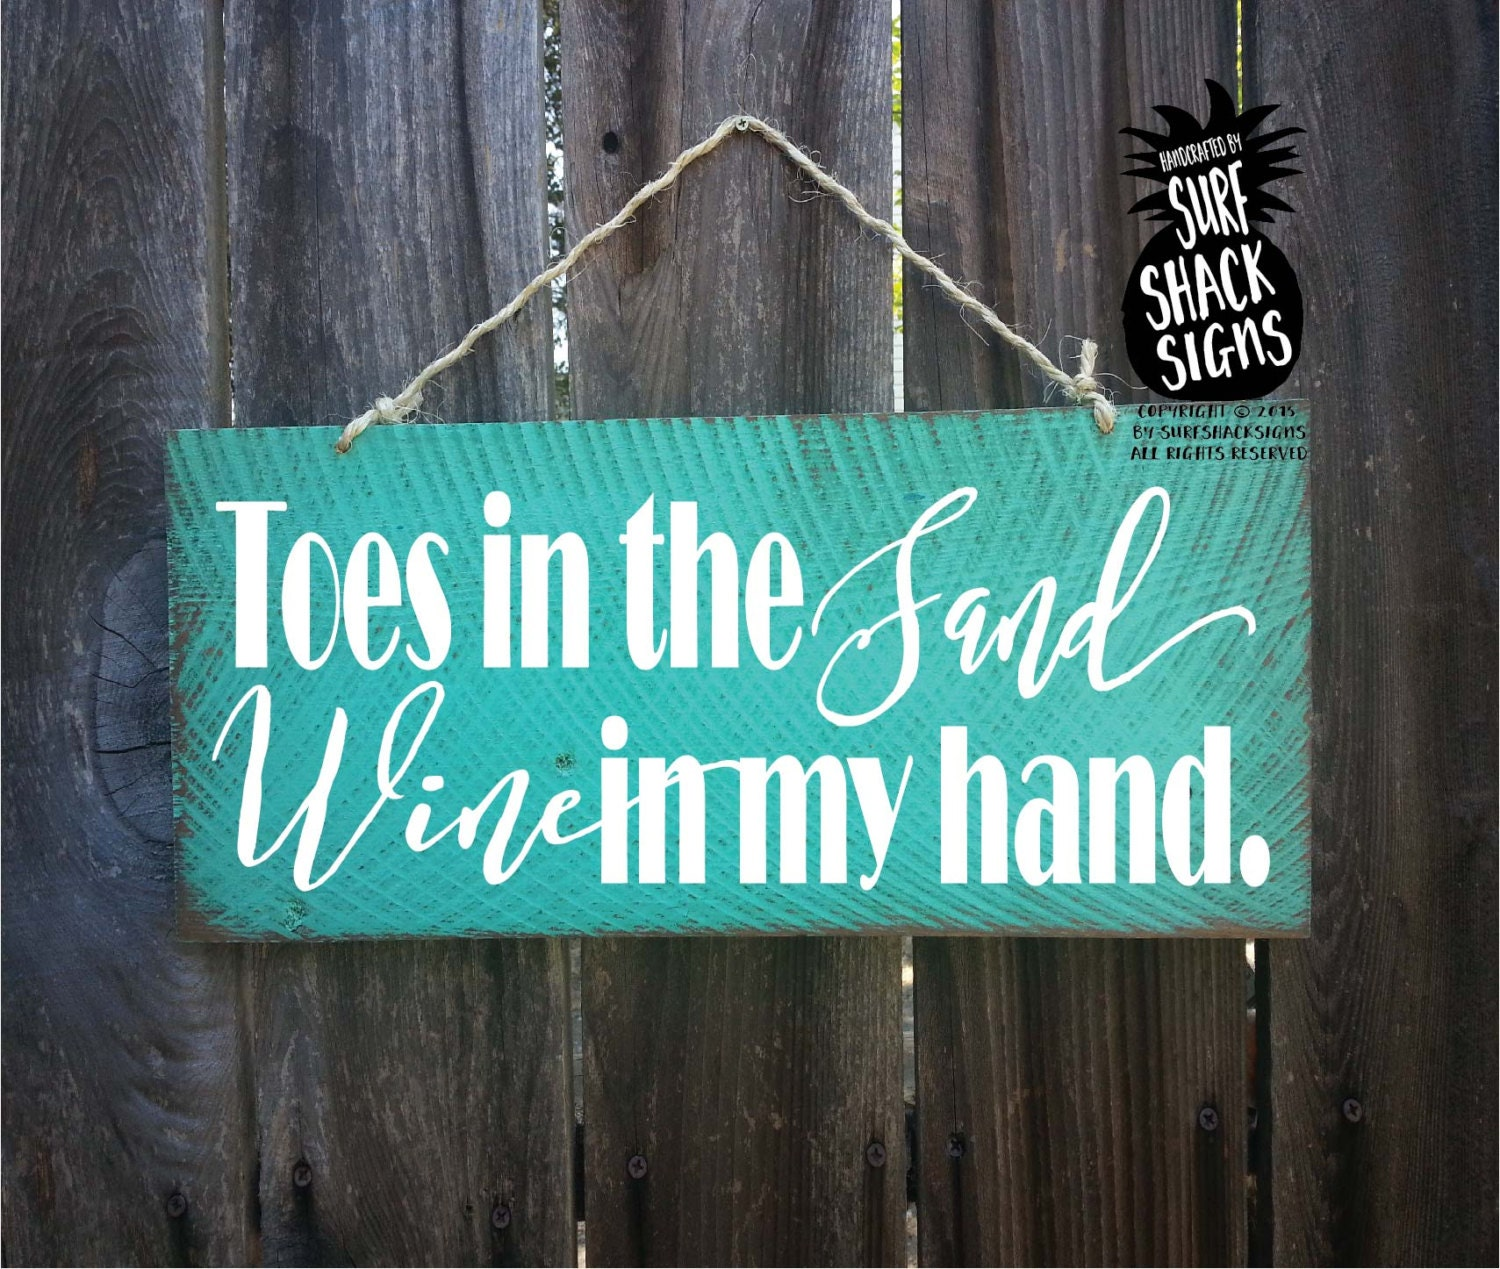 Toes in the sand wine in my hand beach decor beach sign etsy for The sign